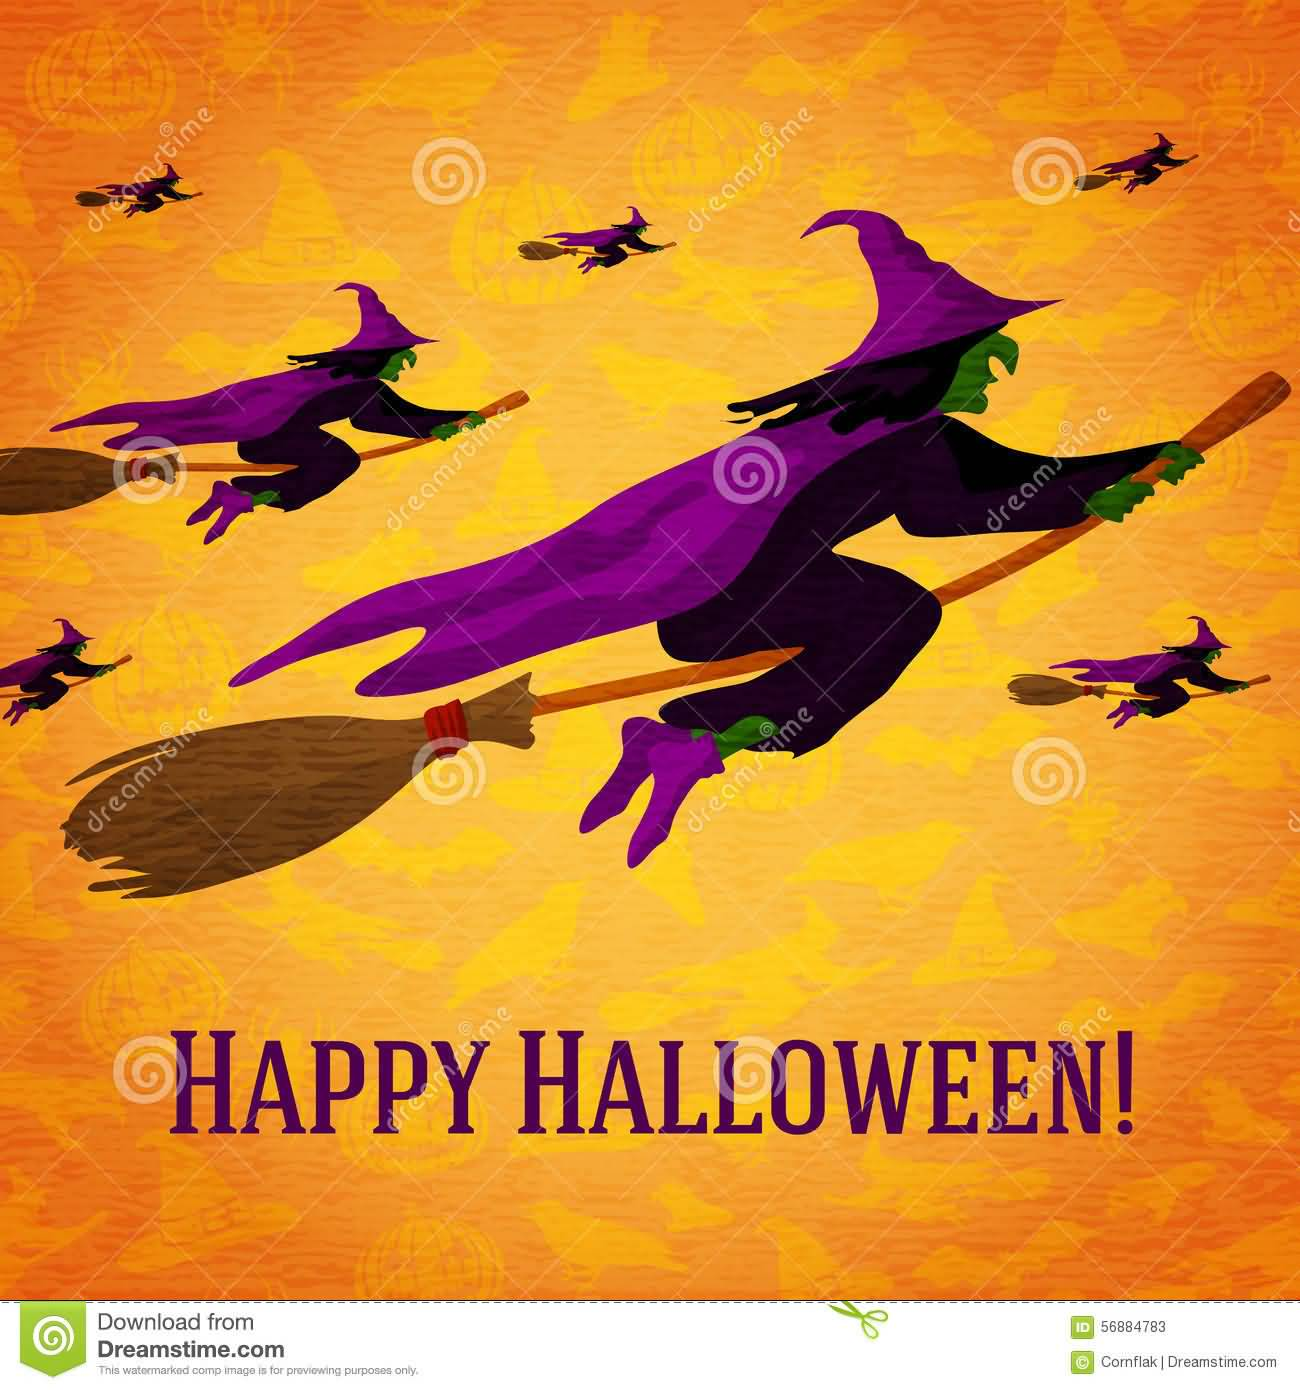 Wonderful Scary Witches Greetings Happy Halloween